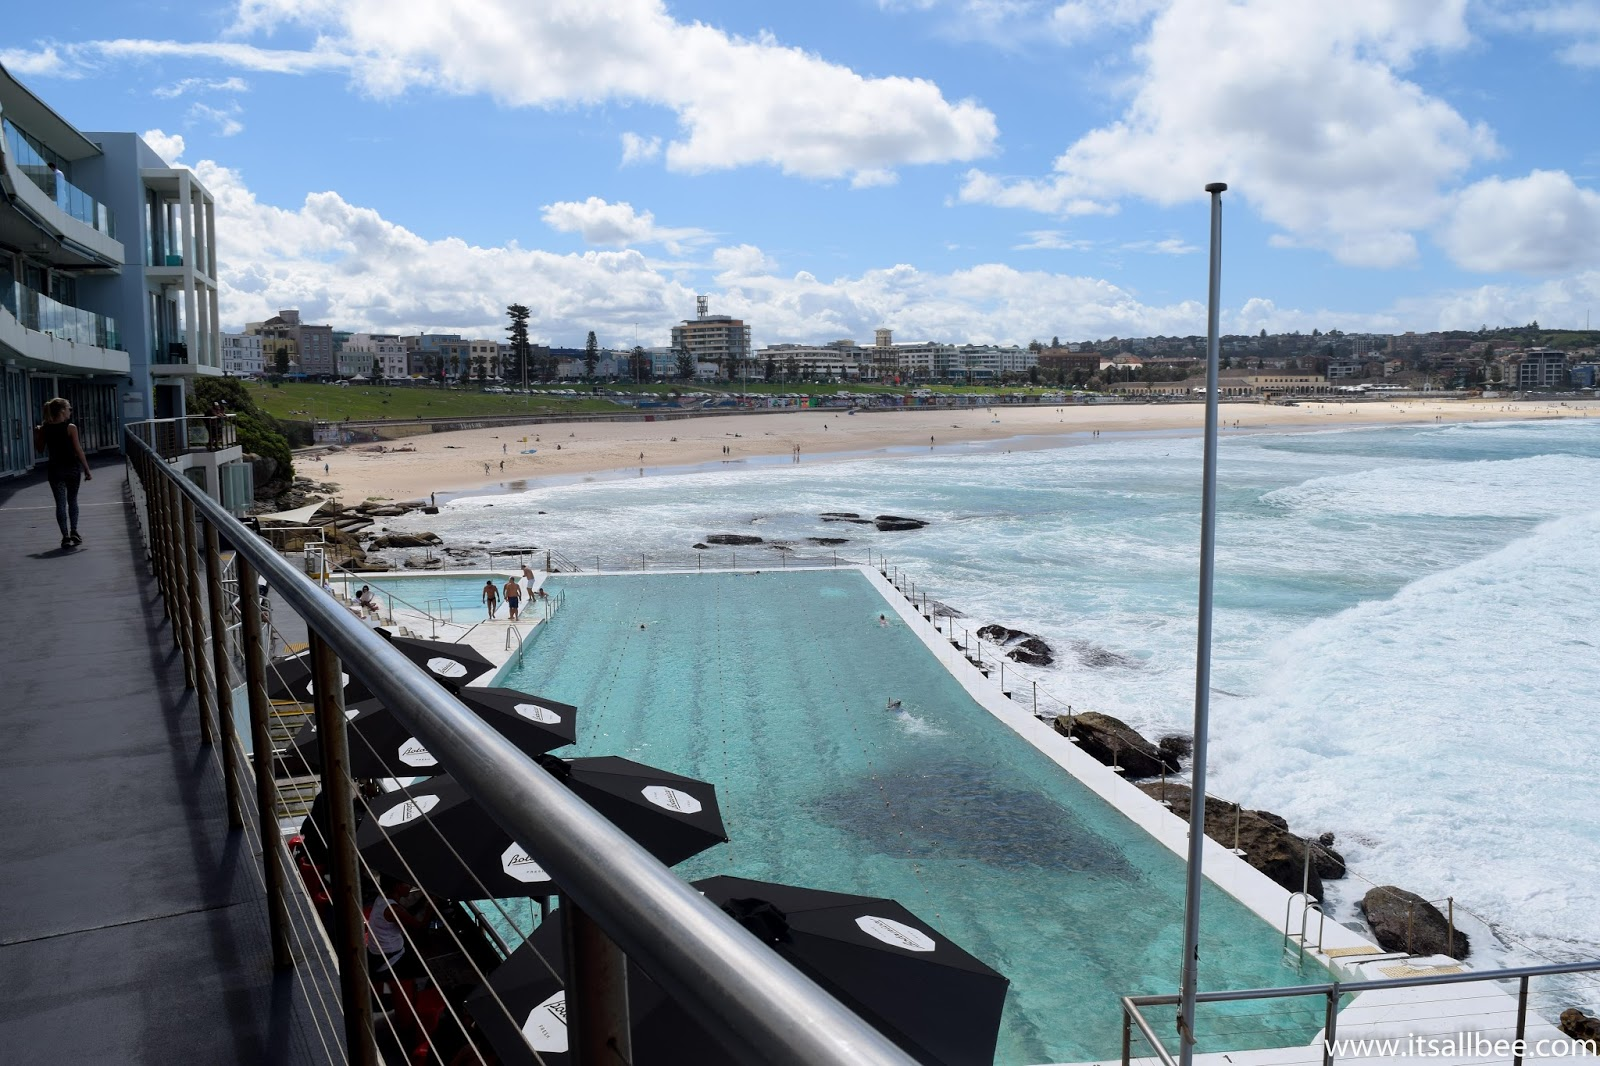 Sydney Beaches | bondi beach surfing| bondi coogee walk | bondi icebergs pool | bondi beach photos | bondi beach walk | bondi beach from sydney